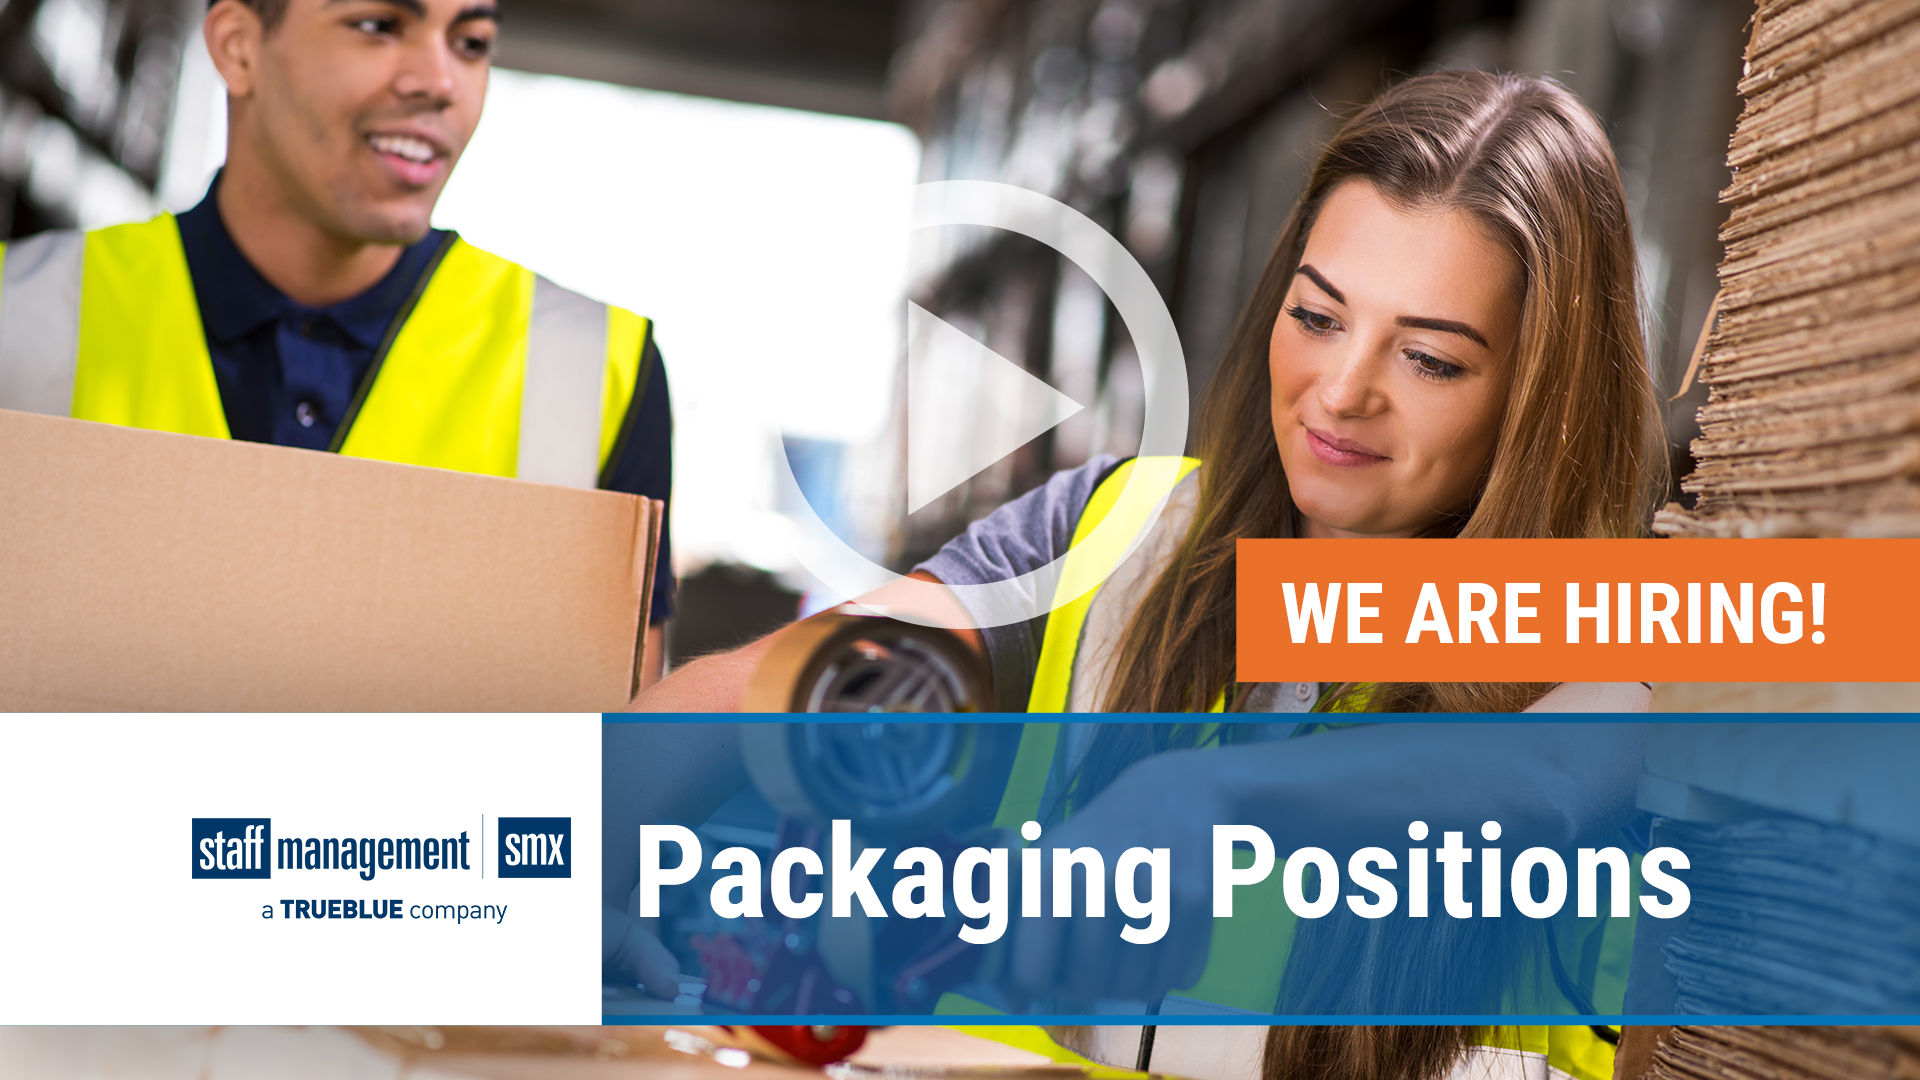 Watch our careers video for available job opening Seeking Hardworking Individuals for Packaging Positions in Asheboro,NC. USA